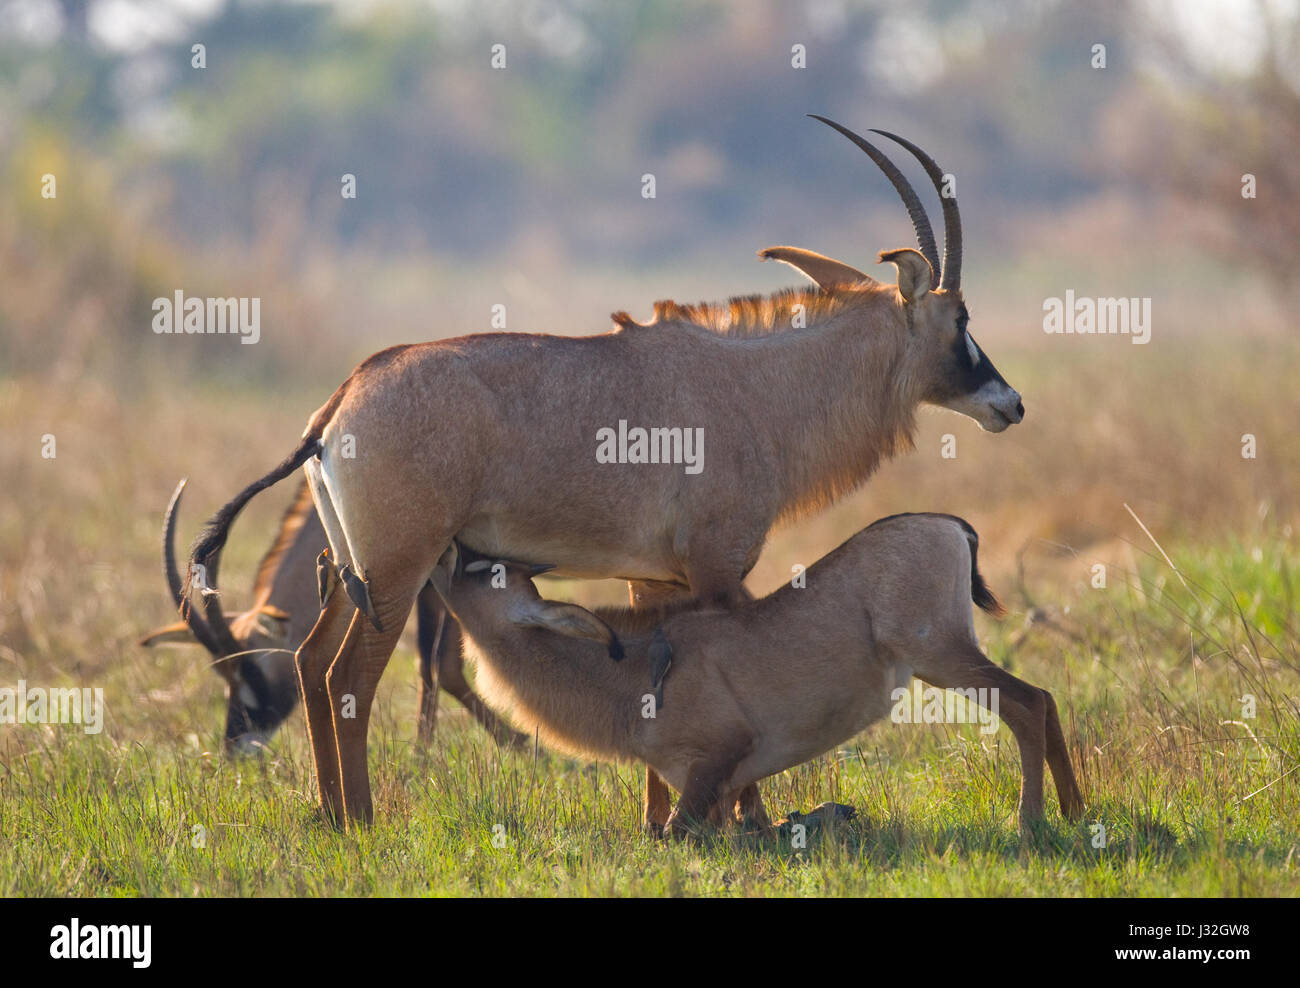 Male and female antelope during the mating season. Botswana. Okavango Delta. An excellent illustration. - Stock Image